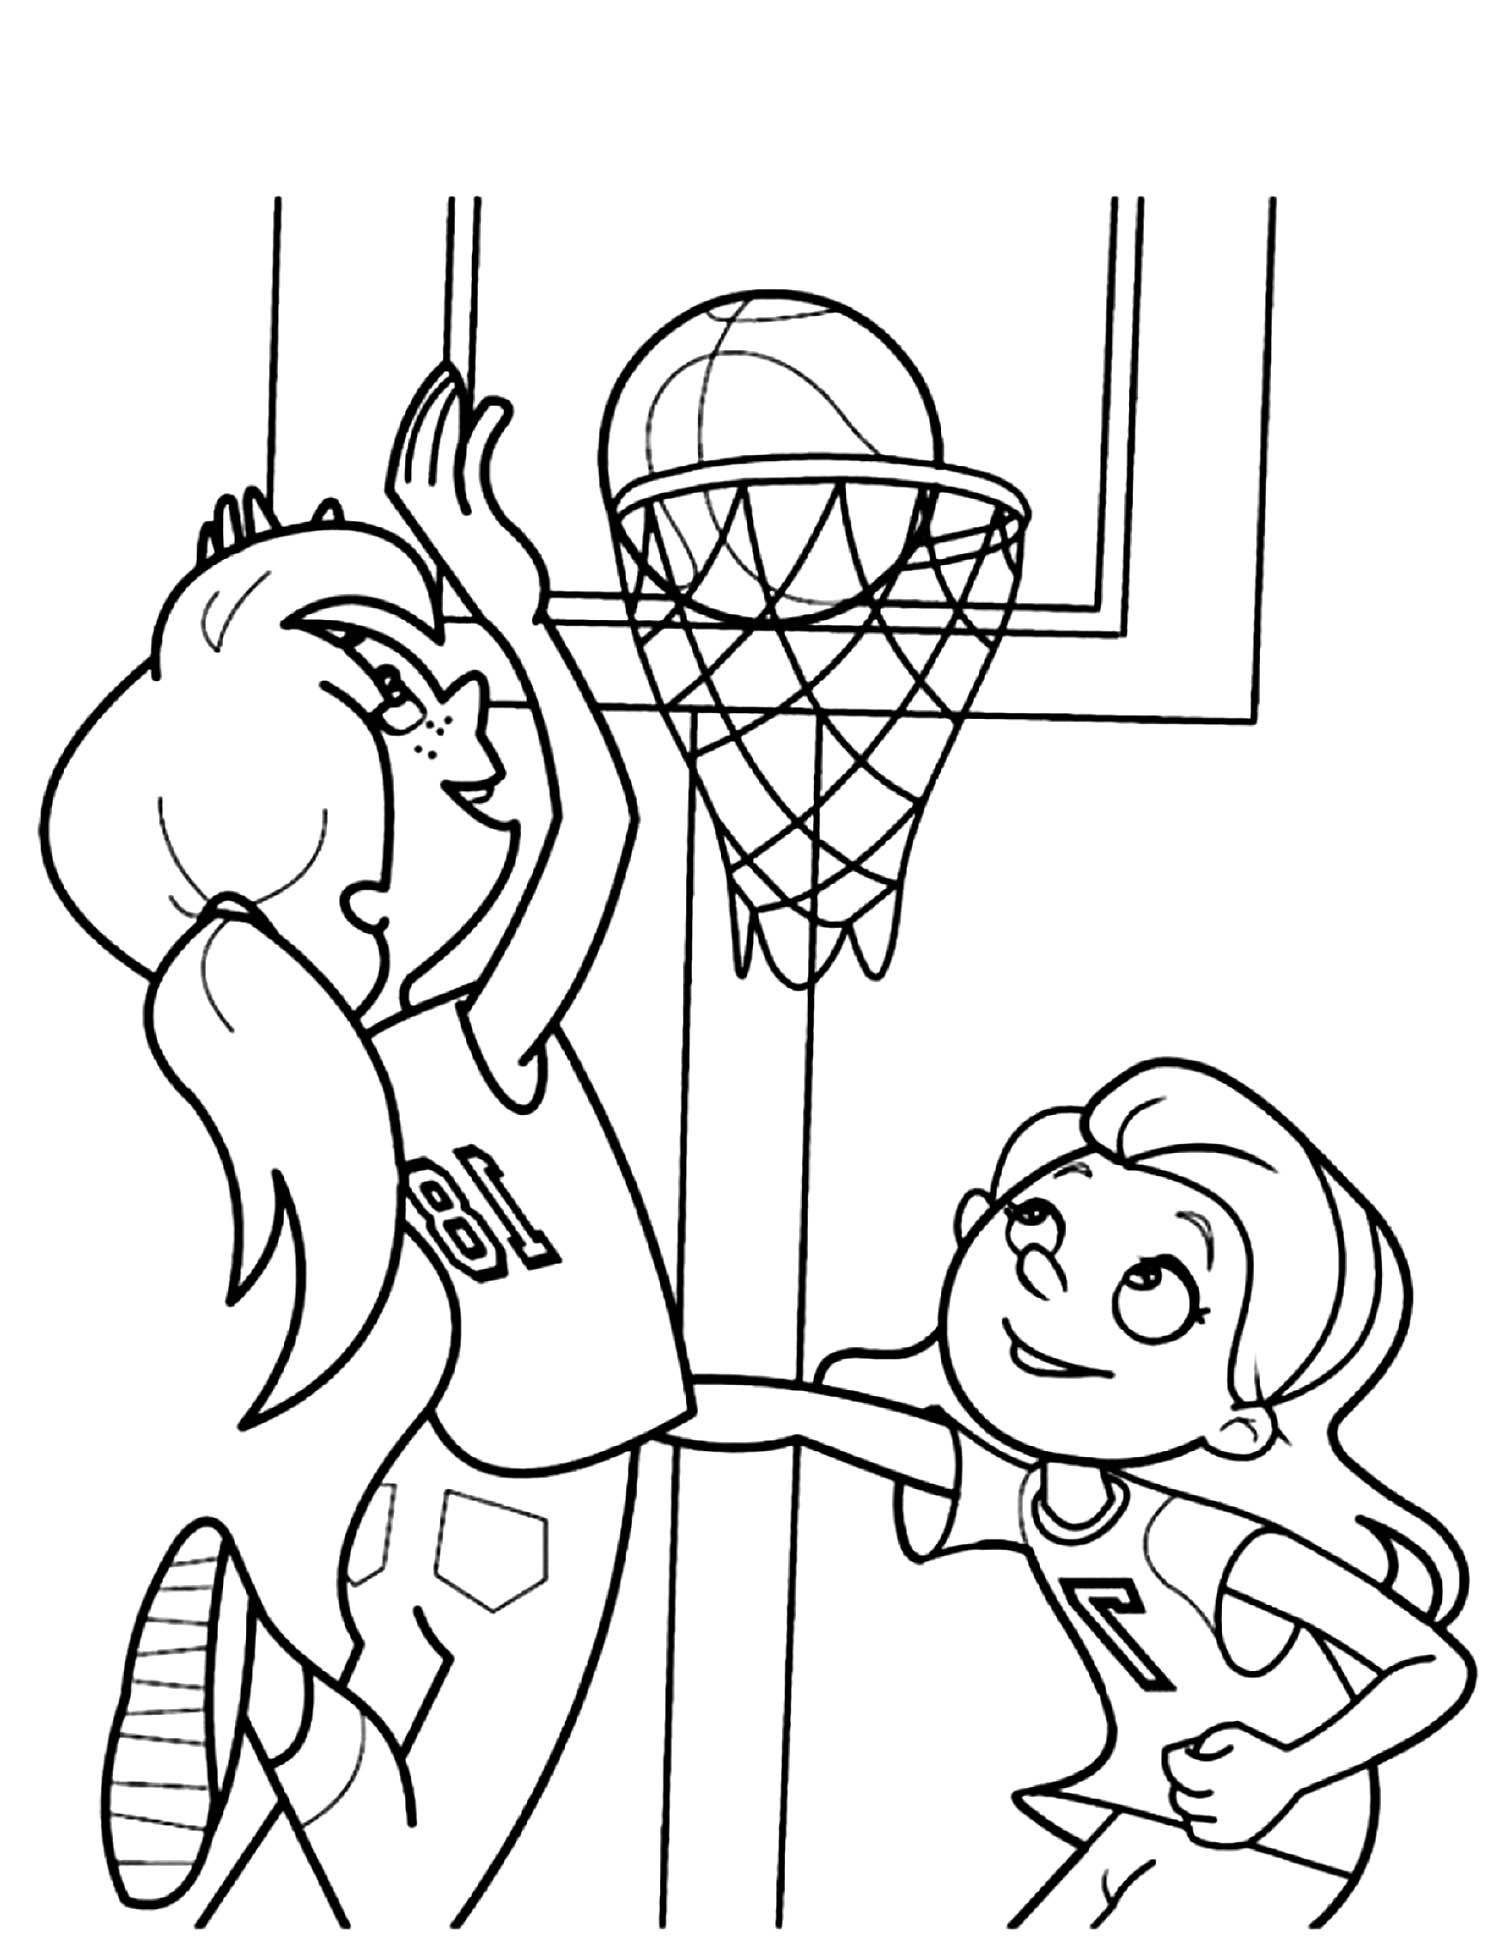 Free Basketball Coloring Page To Download From The Gallery Basketball Baseball Coloring Pages Bunny Coloring Pages Coloring Pages For Kids